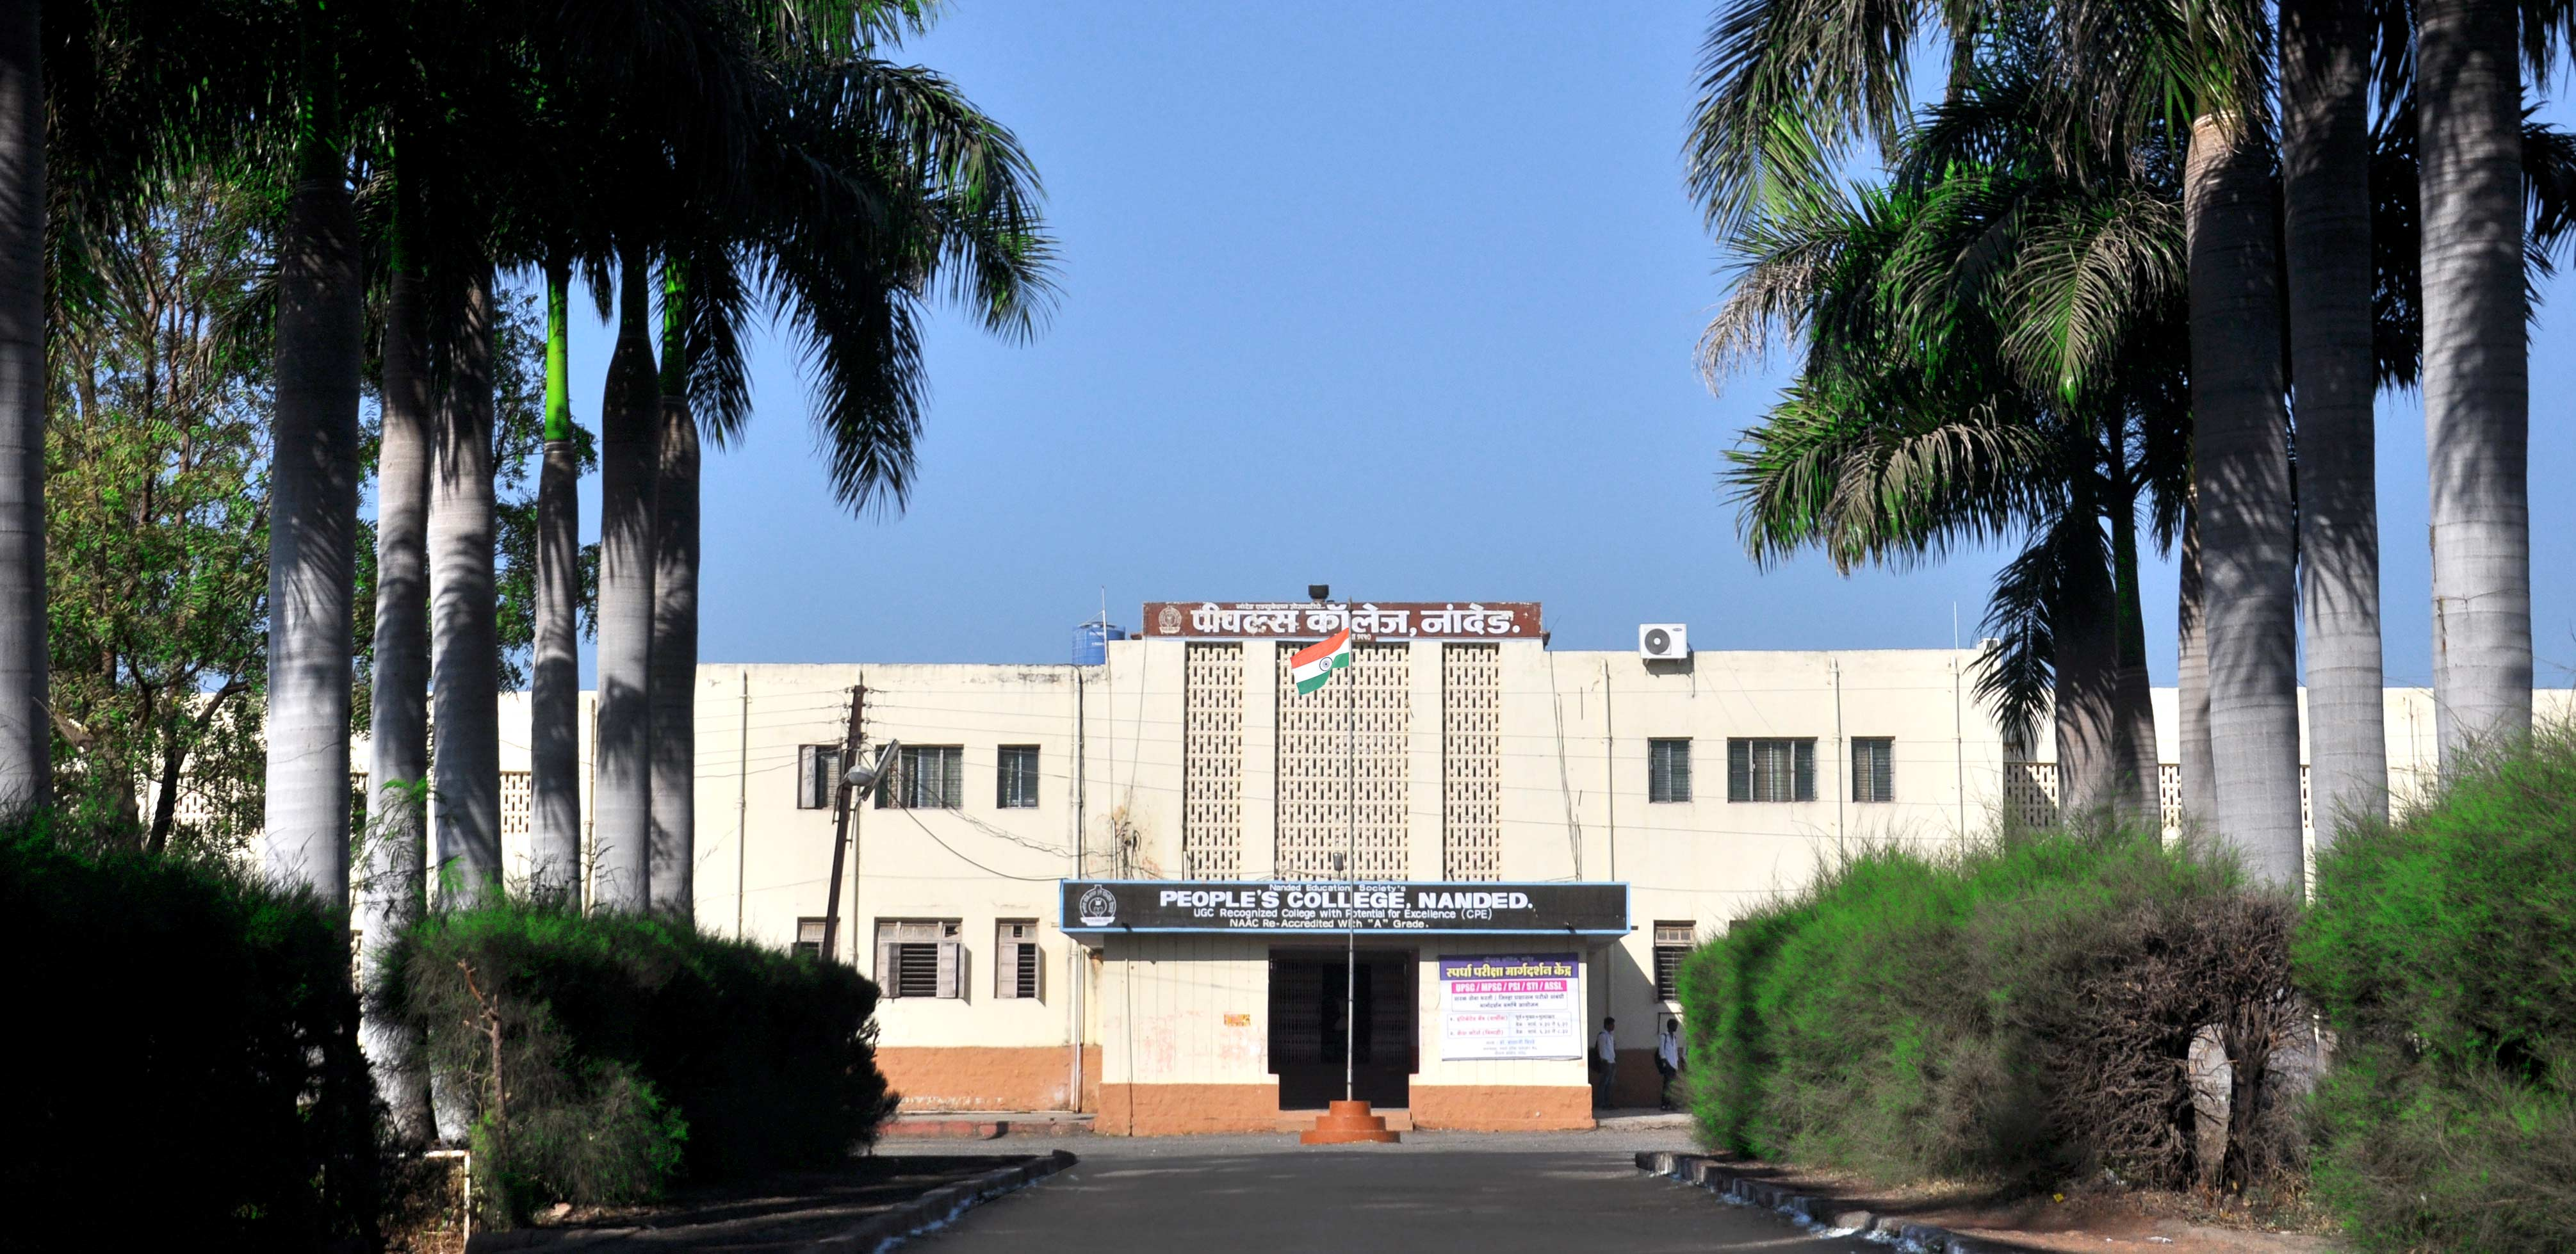 People's College, Nanded Image